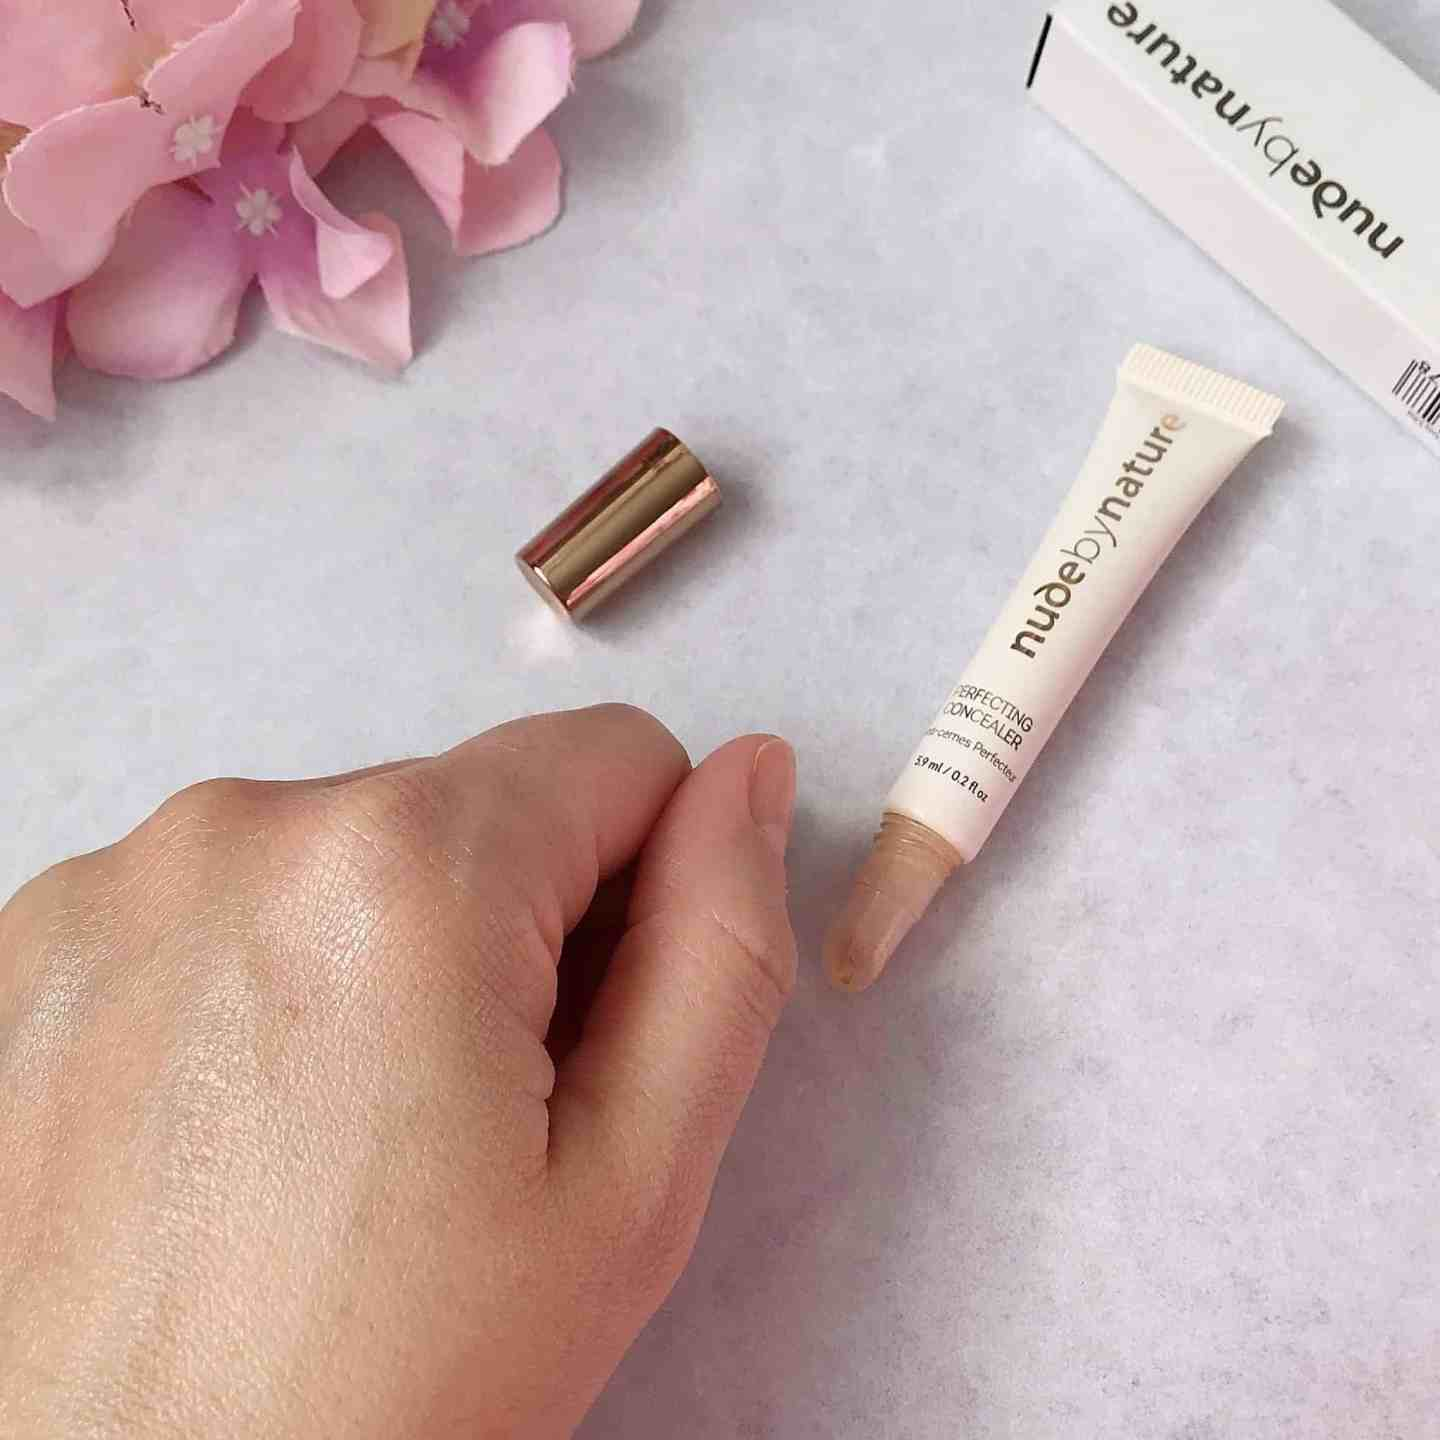 Nude by Nature Perfecting Concealer blended